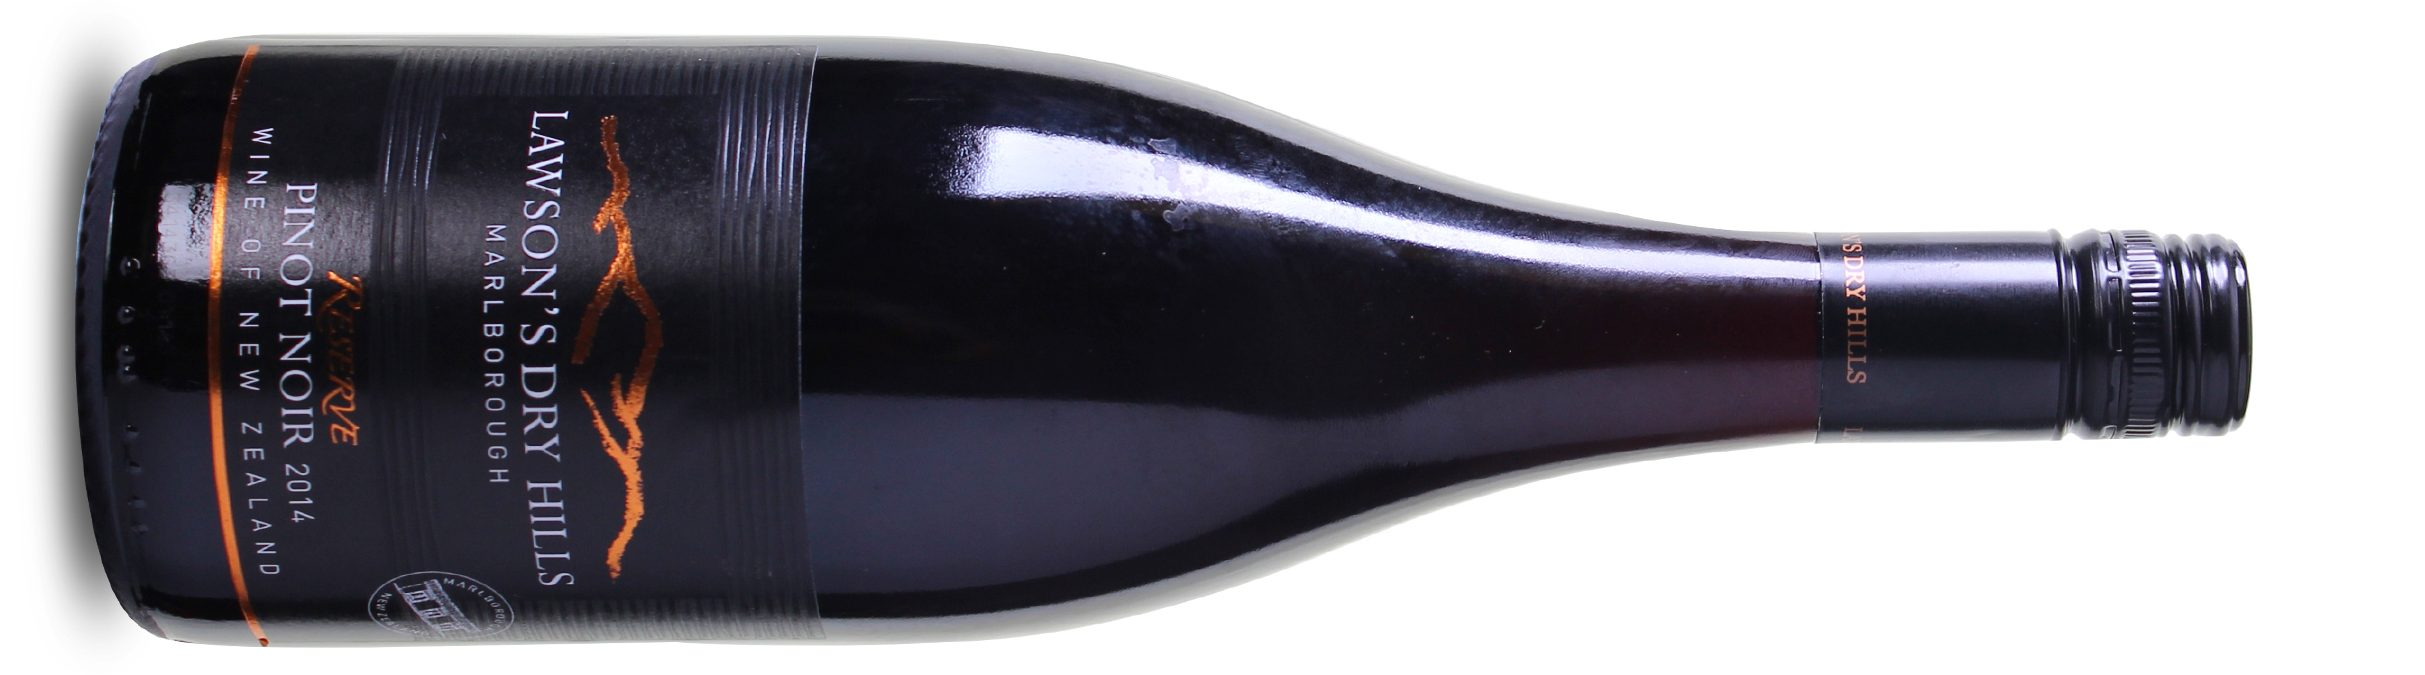 Lawson's Dry Hills Pinot Noir Reserve